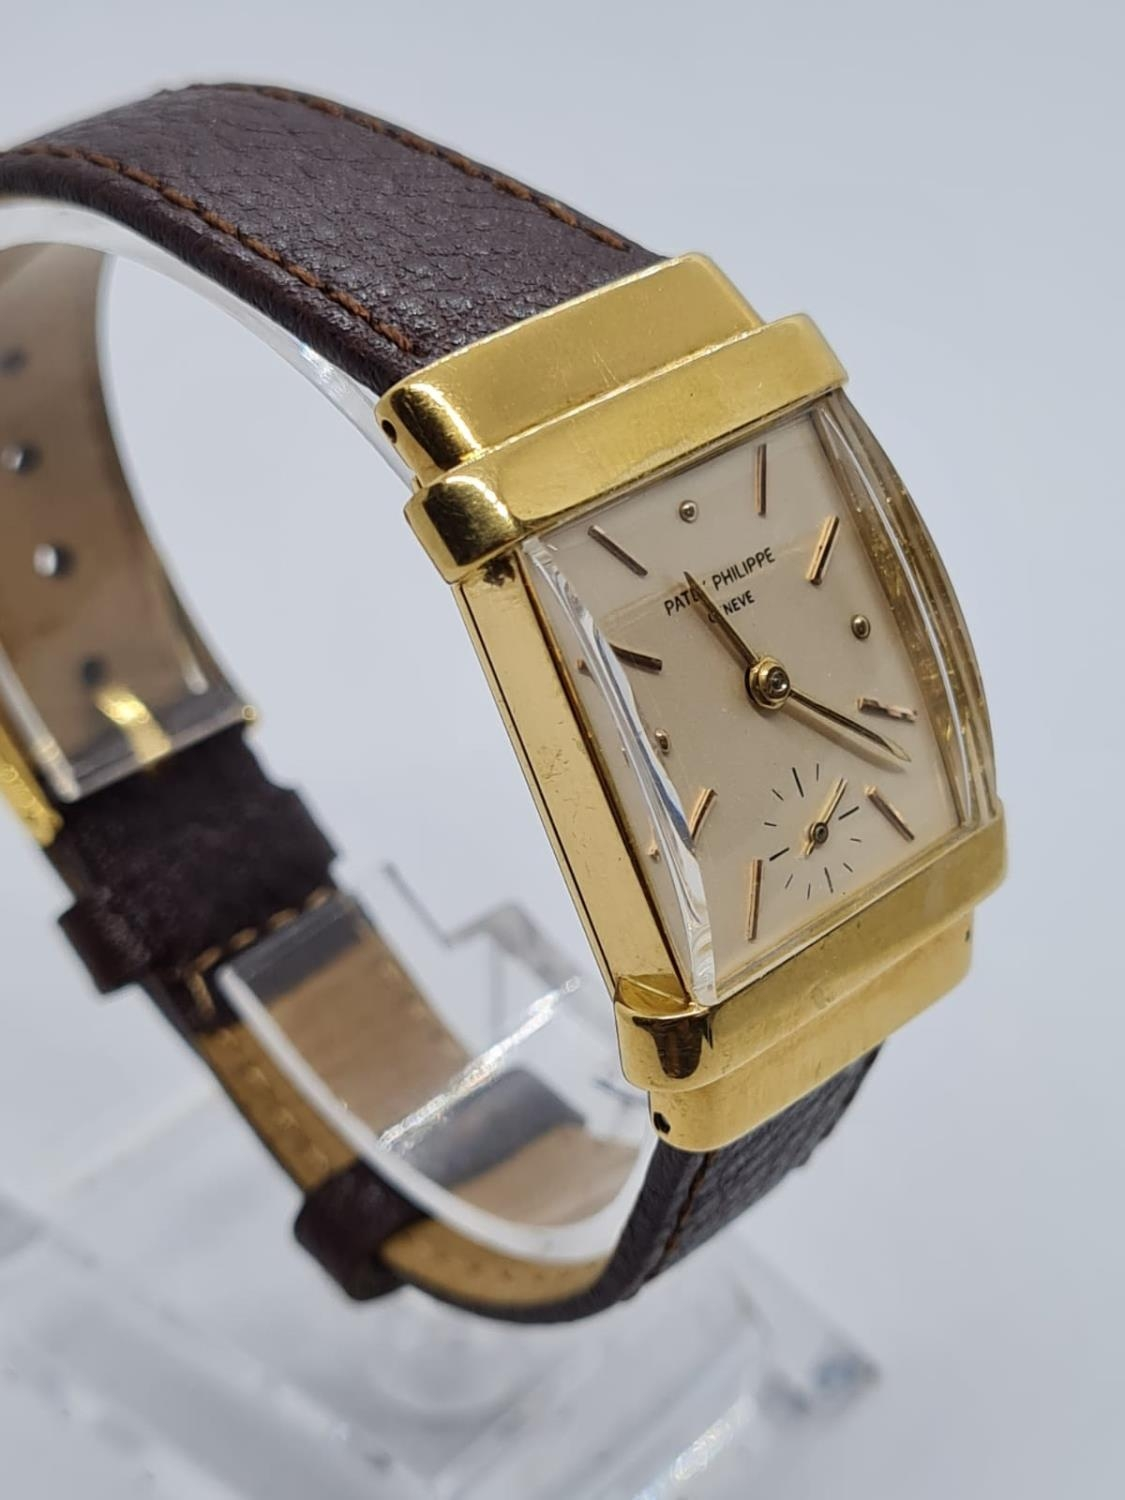 Patek Philippe Geneve WATCH tank style with rectangular face Case: 20x40mm. Brown Leather Strap. - Image 3 of 5